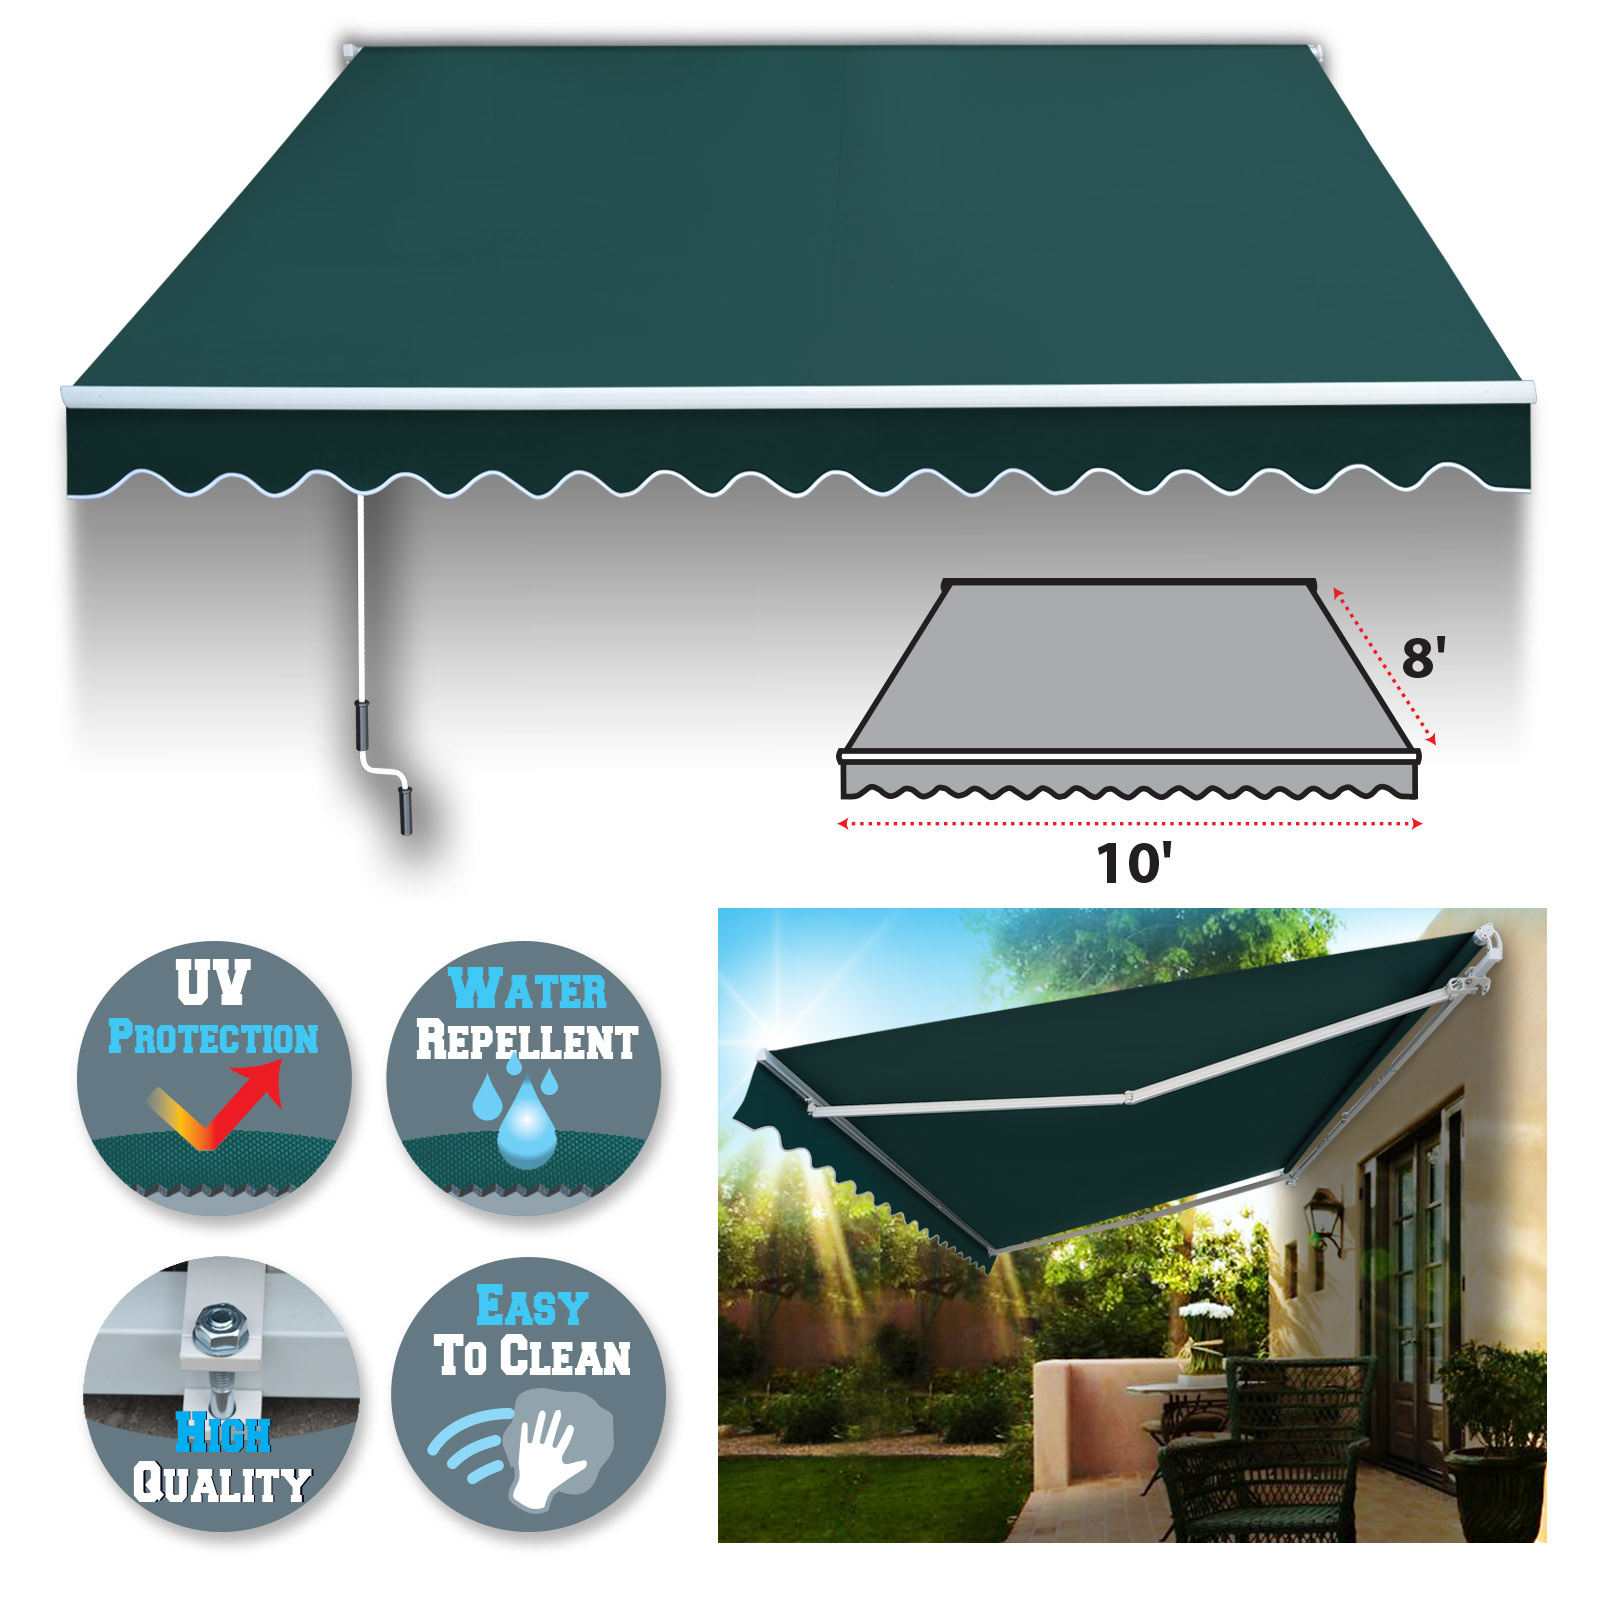 Sunrise 10' x 8' Manual Retractable Patio Deck Awning Cover, Canopy Sunshade (Beige)